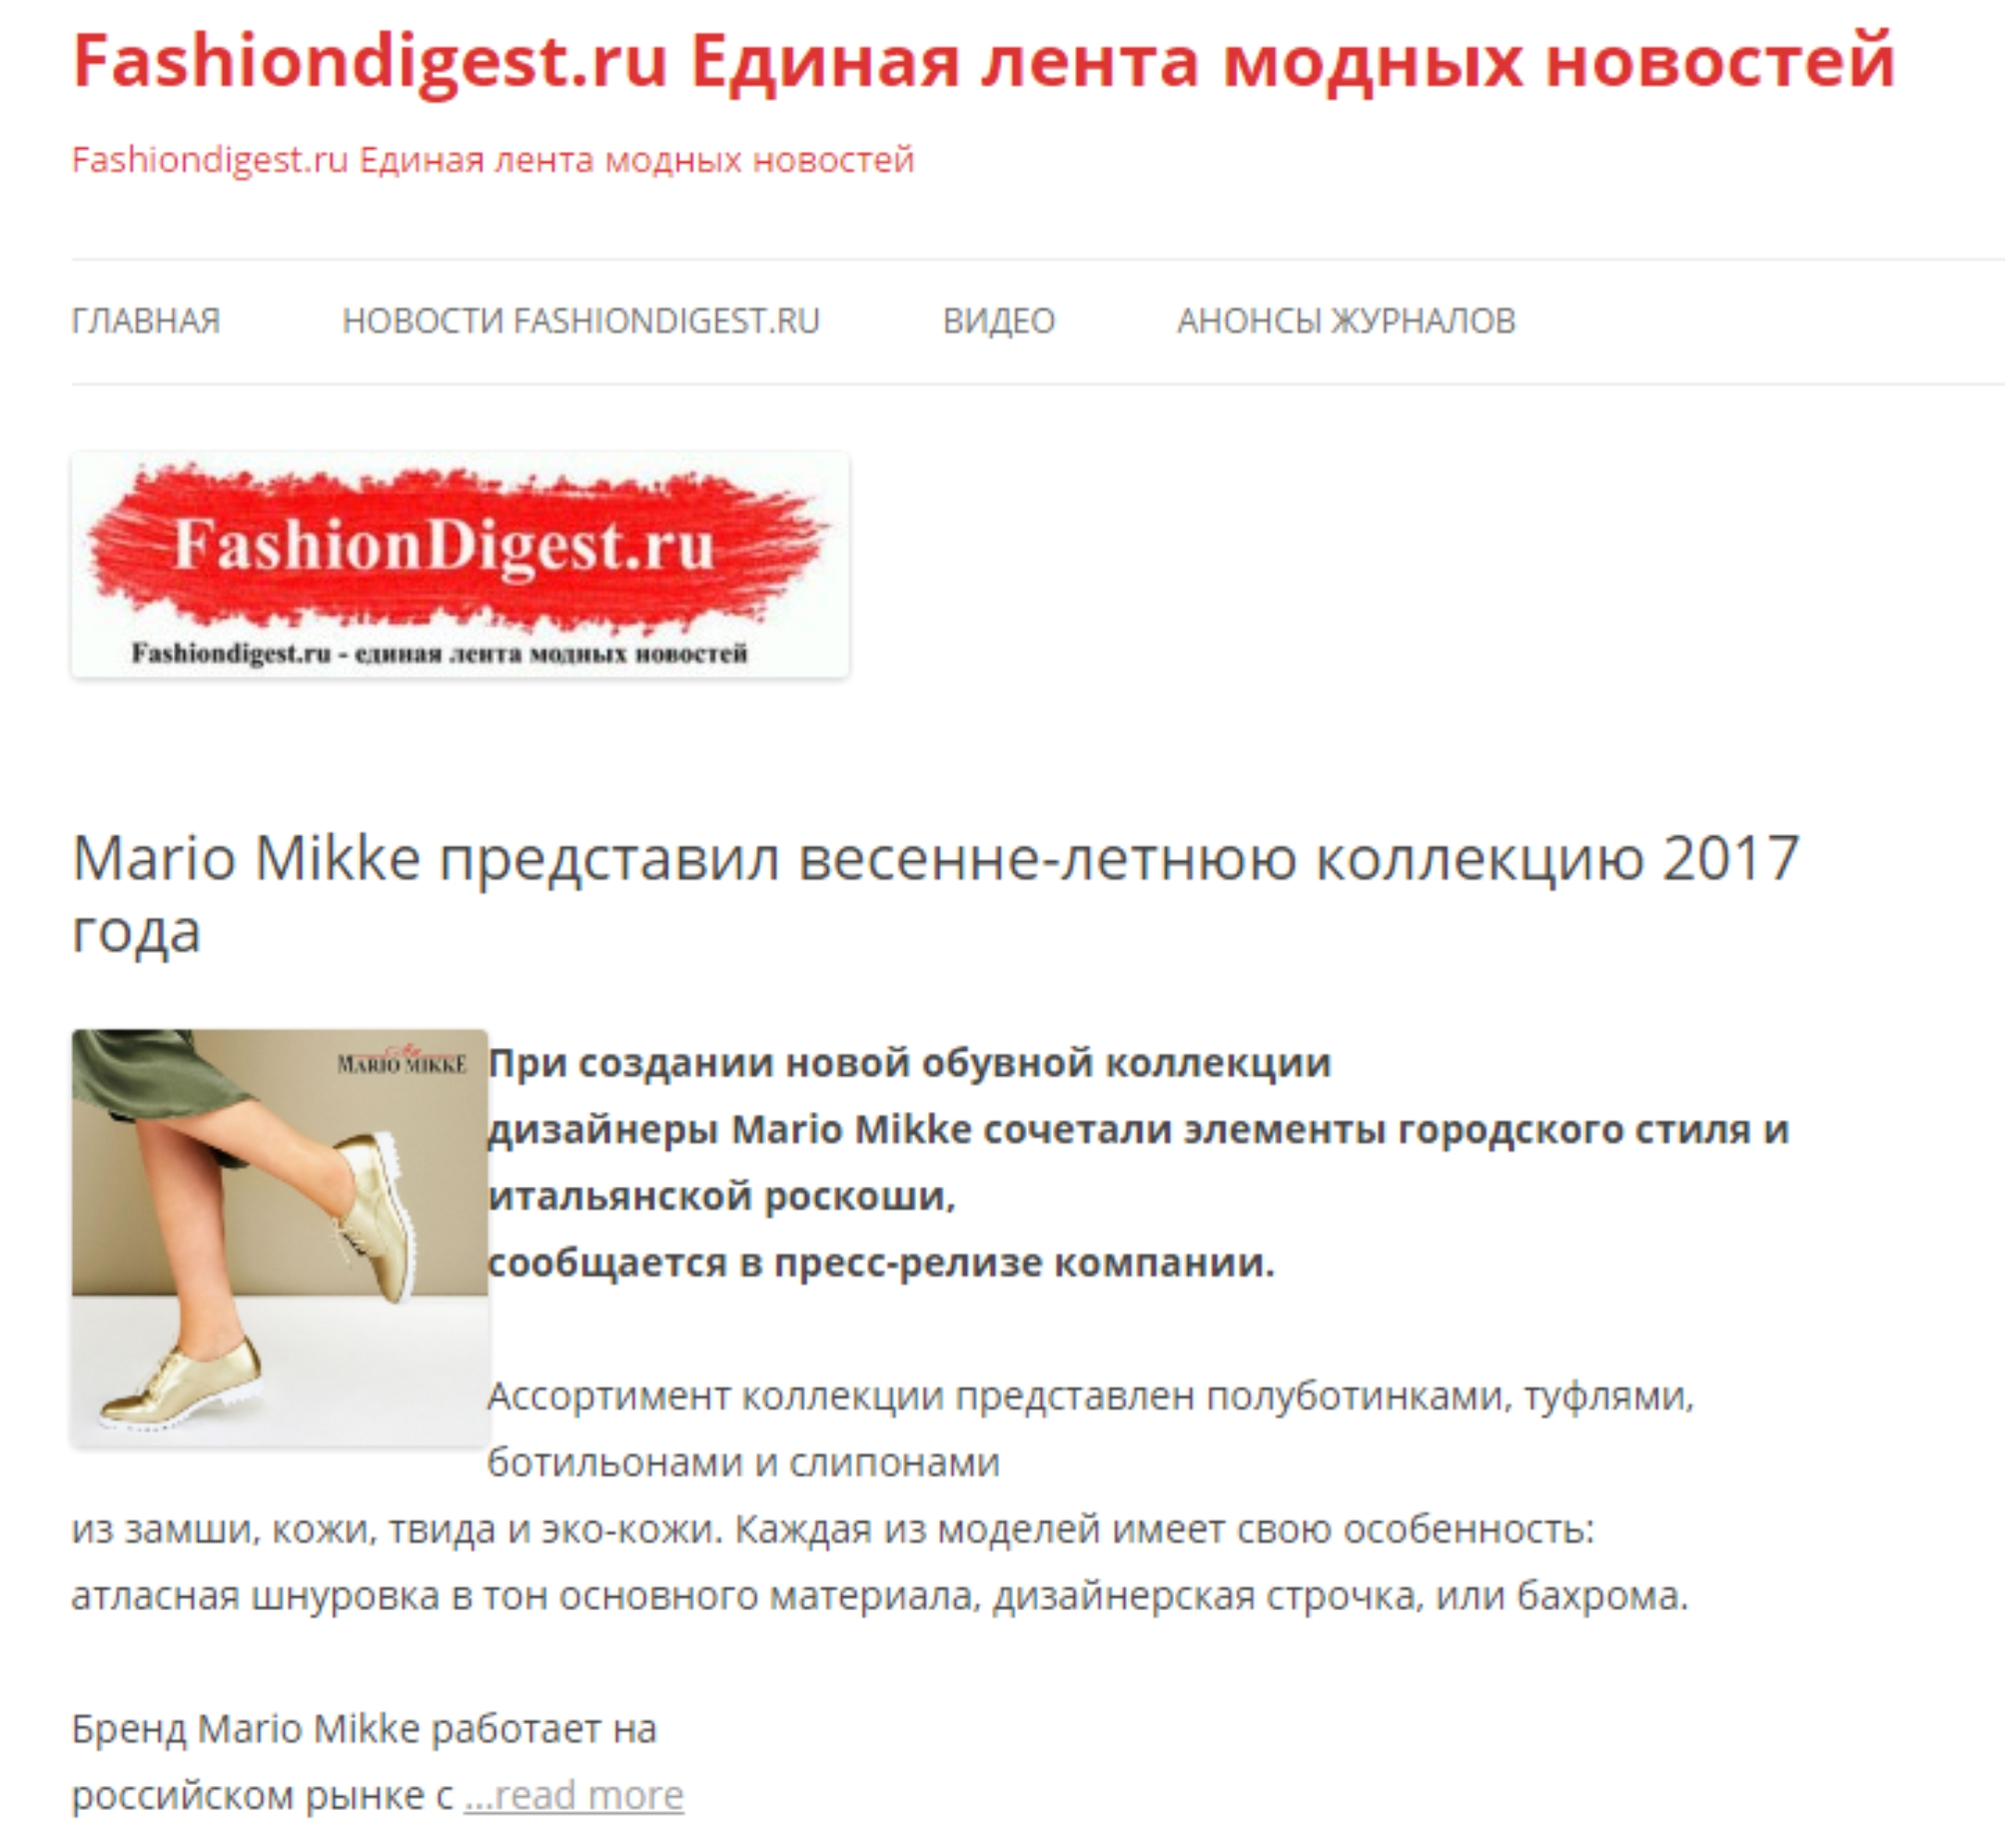 www.fashiondigest.ru